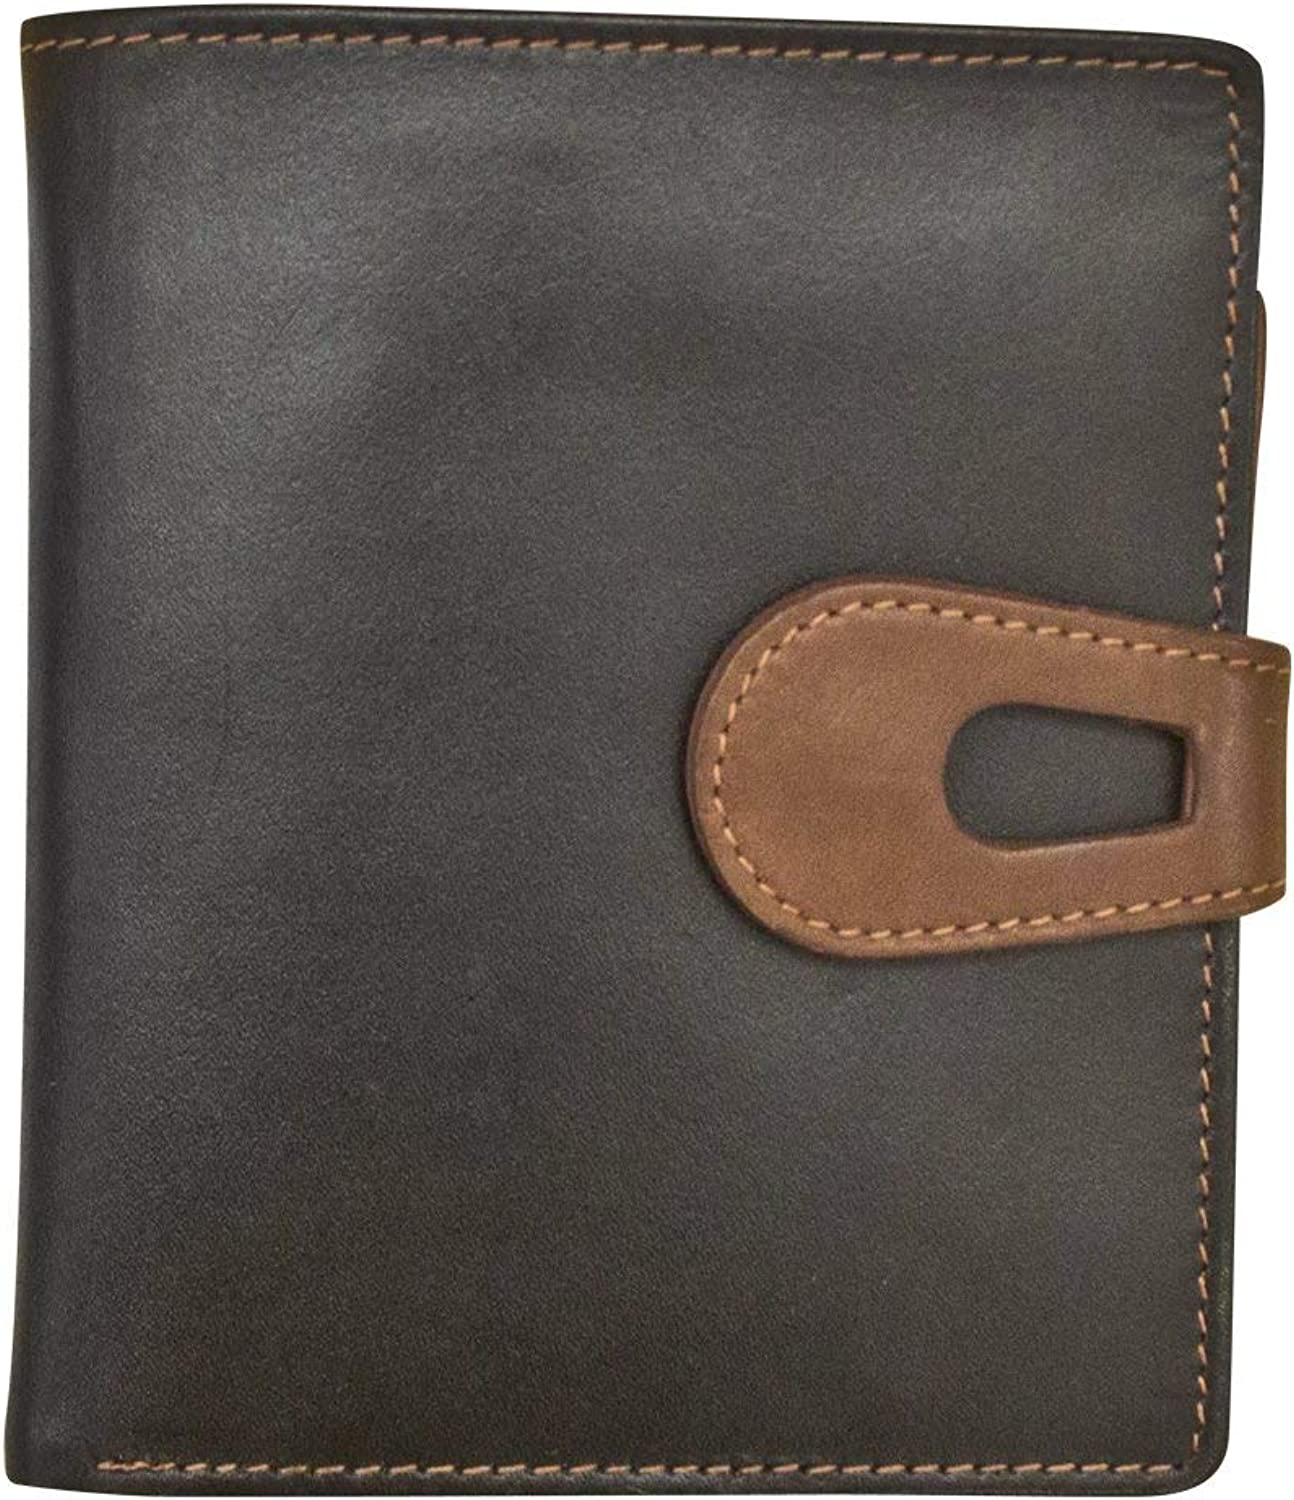 ili New York 7812 Midi Wallet RFID with Blocking Lining Ultra-Cheap Deals Quality inspection